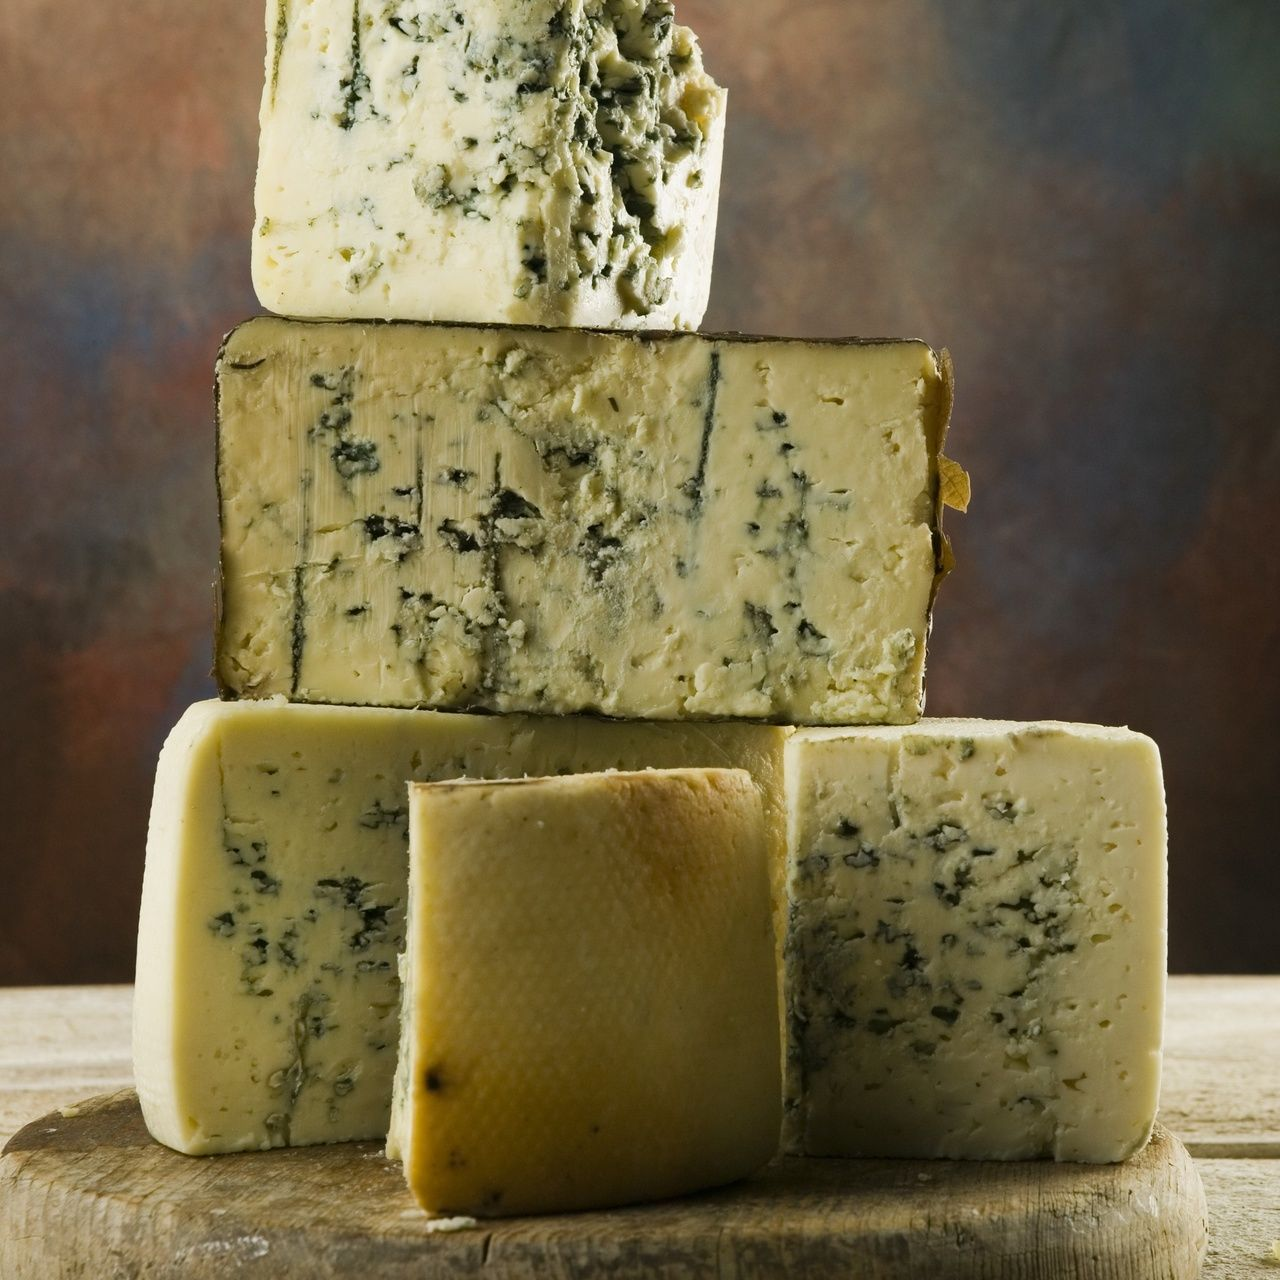 Rogue creamery award winning blue cheeses gbve0q